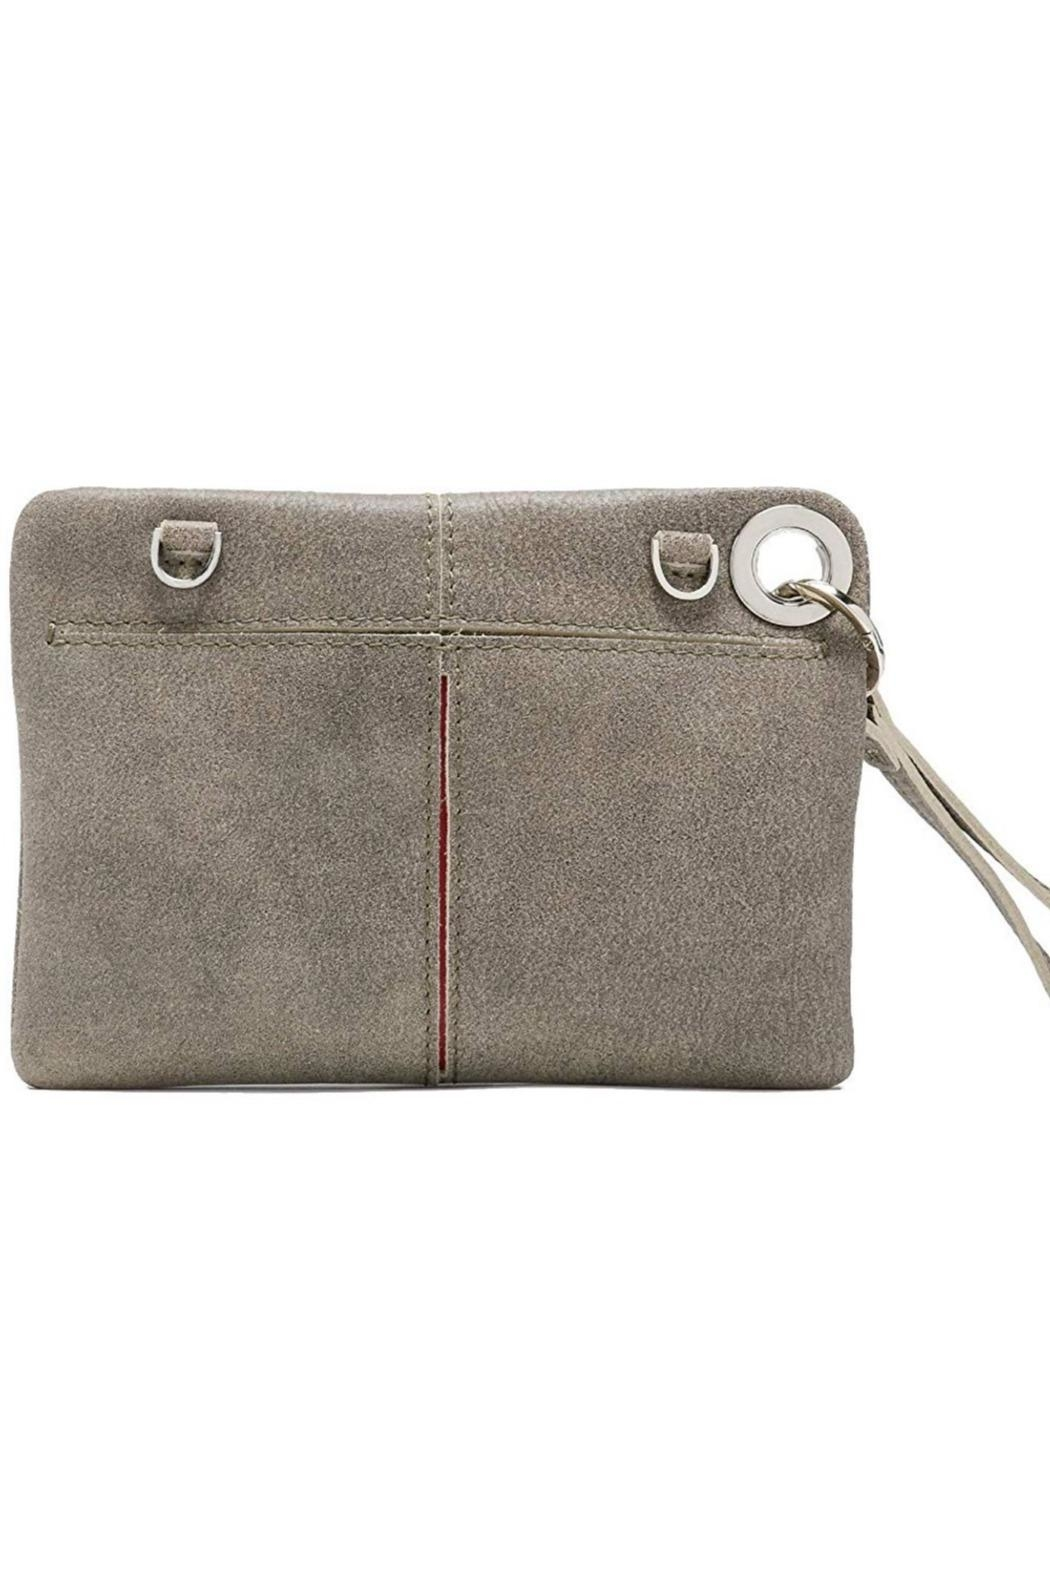 Hammitt Los Angeles Nash Clutch - Front Full Image